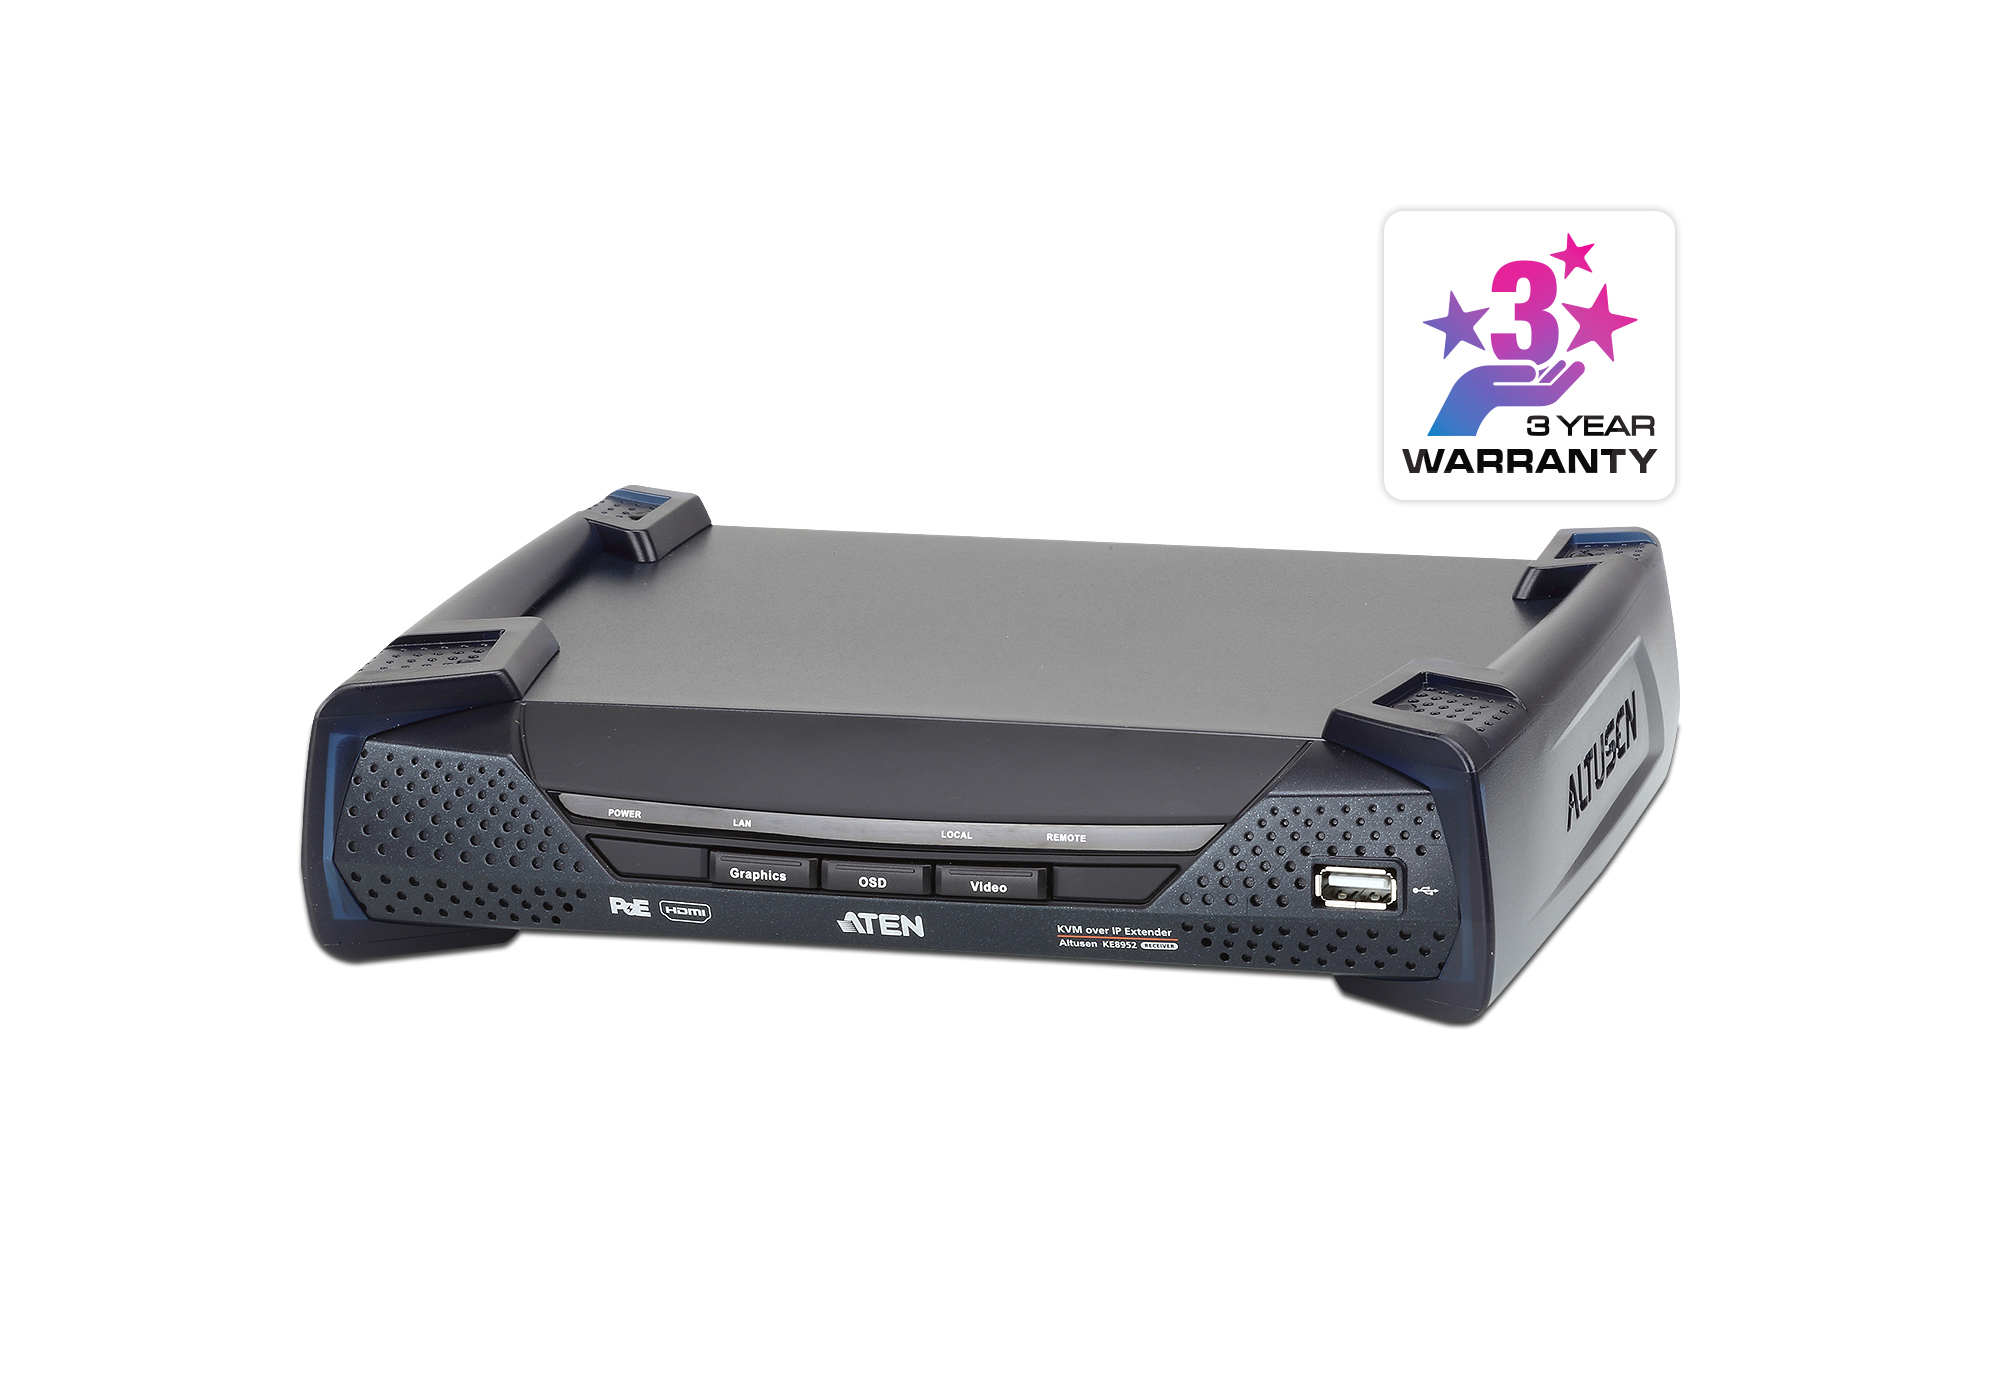 RECEPTOR KVM POR IP HDMI 4K SINGLE DISPLAY CON PoE